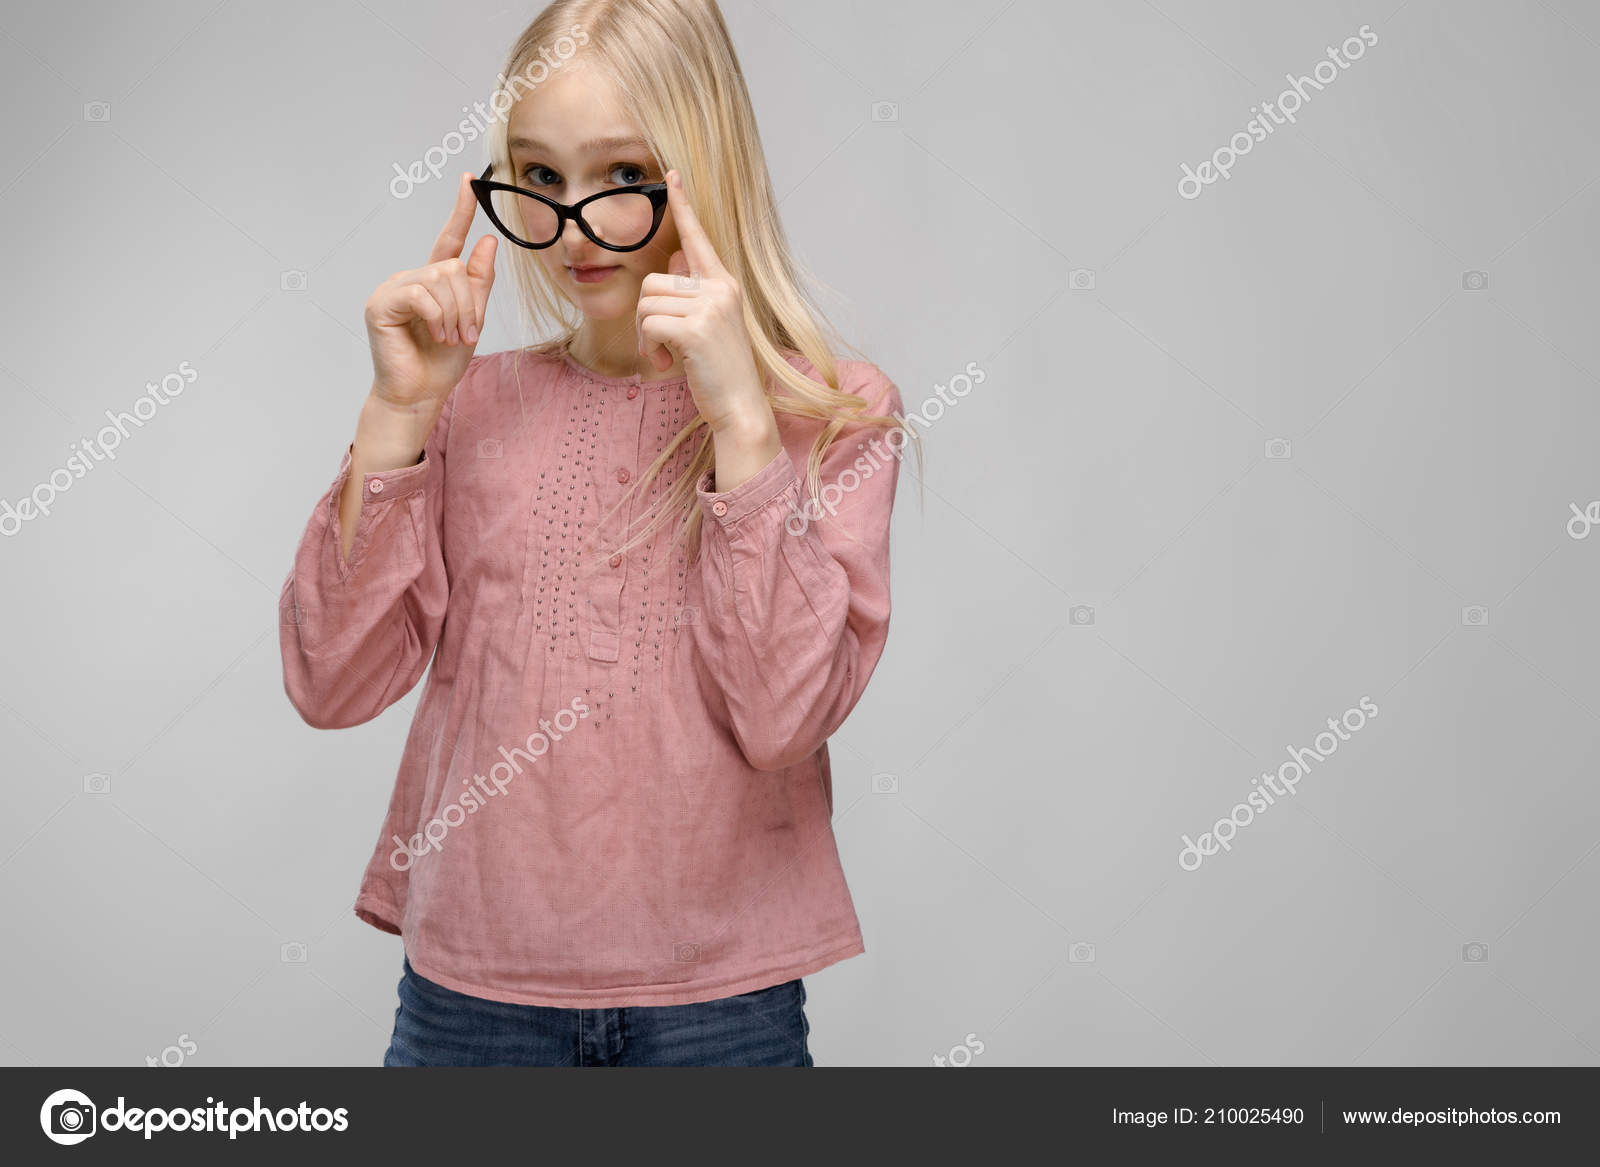 Cute blonde teen girl with glasses